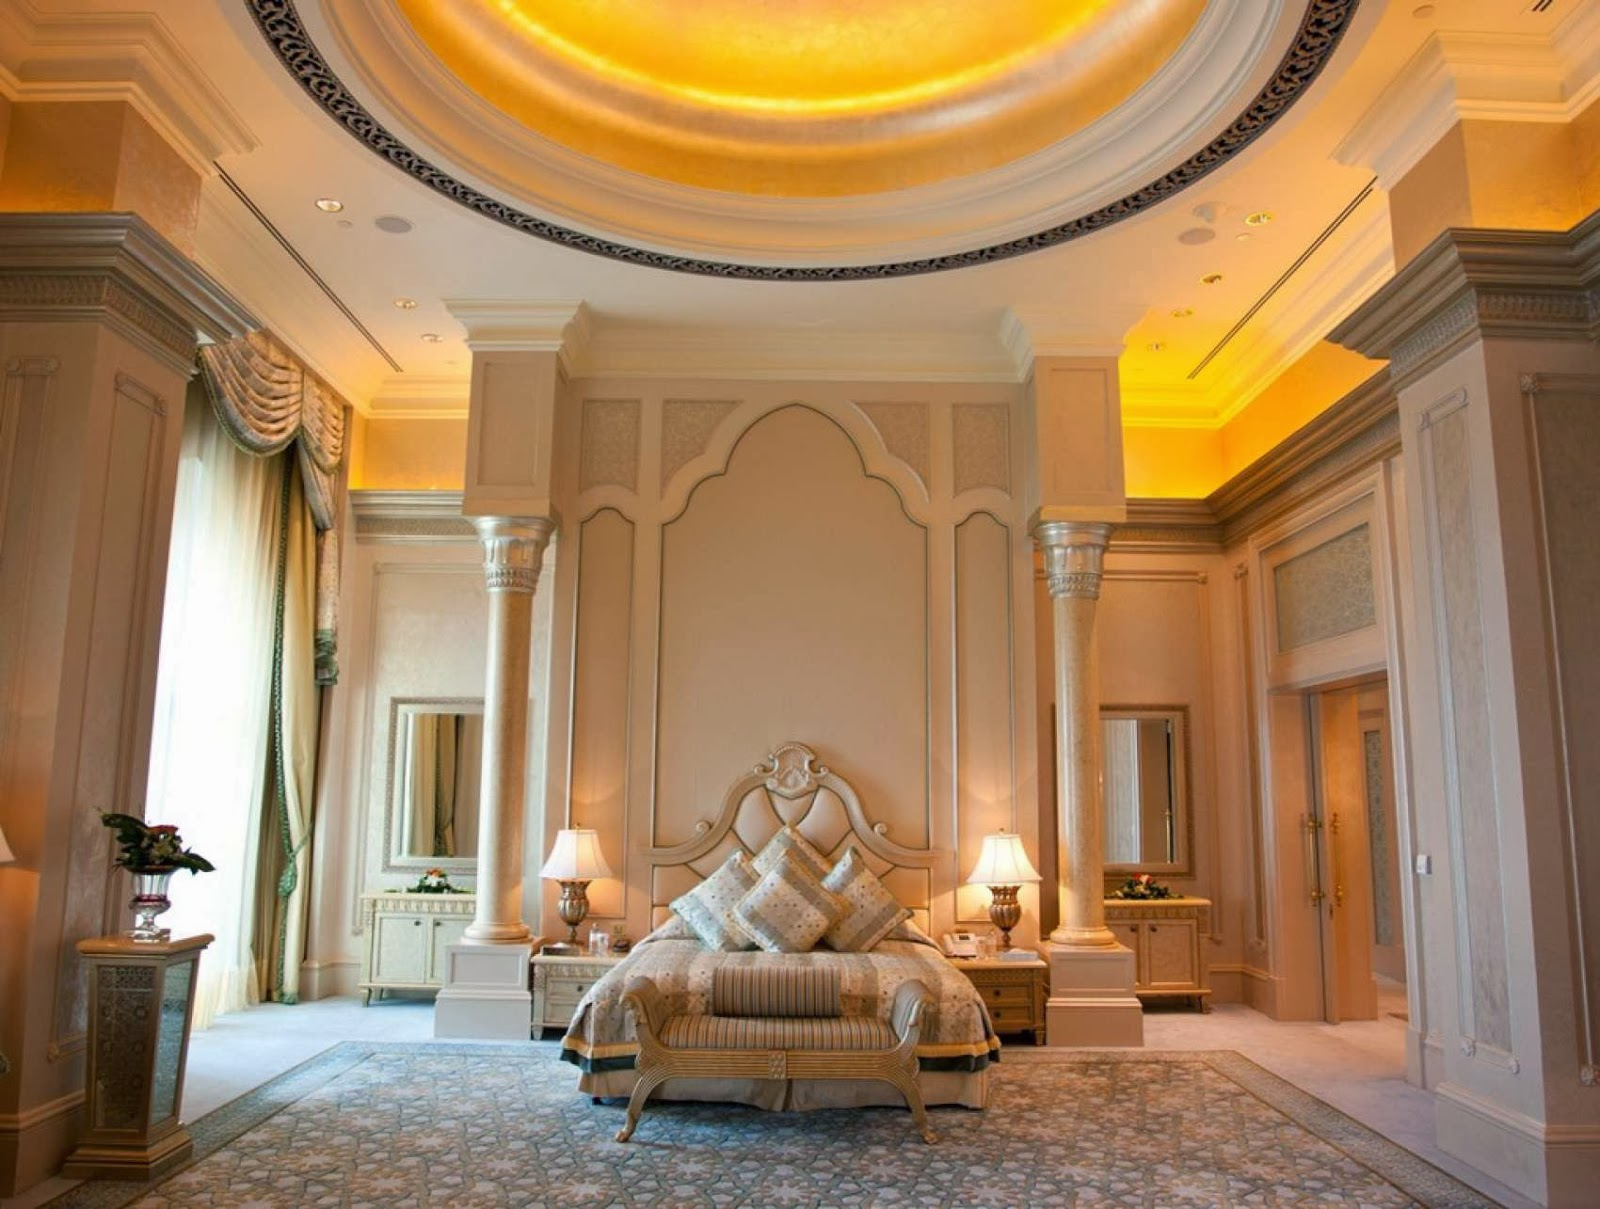 Luxury life design emirates palace abu dhabi arabian fantasy Pics of master bedroom suites